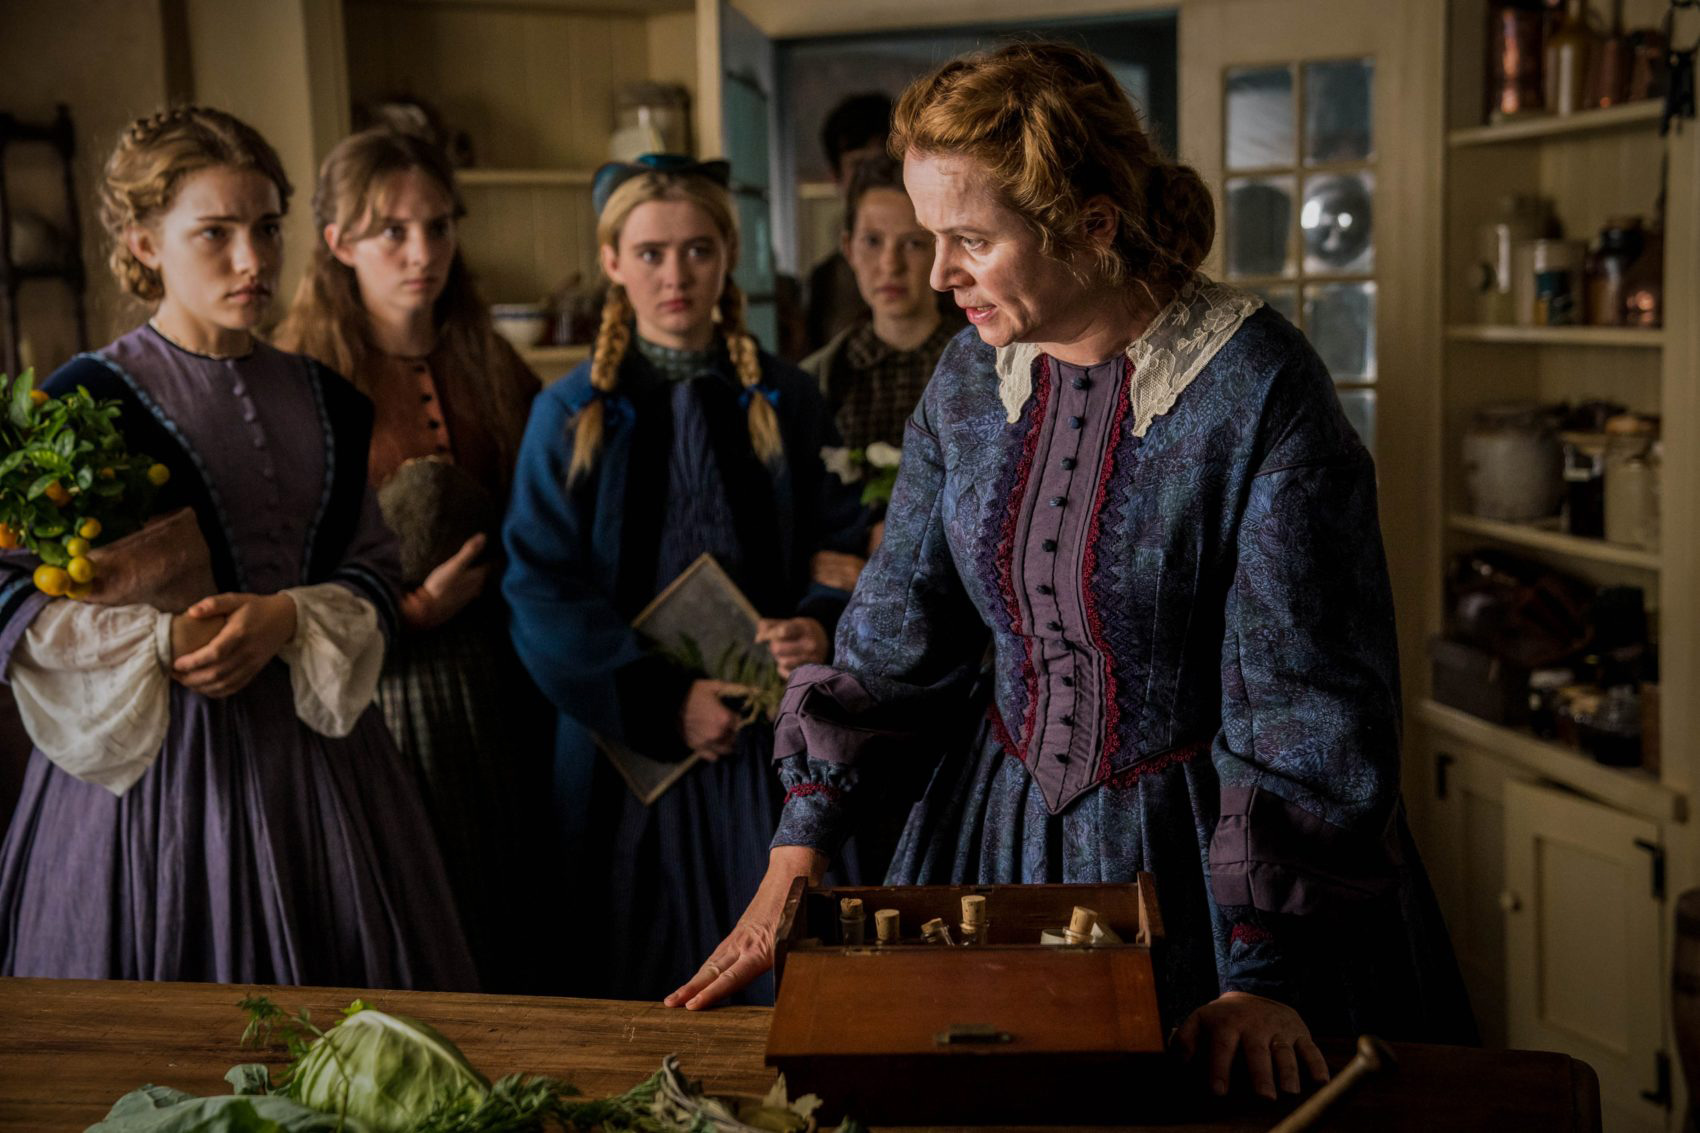 LITTLE WOMEN: Willa Fitzgerald, Maya Hawke, Kathryn Newton, Anne Geddes